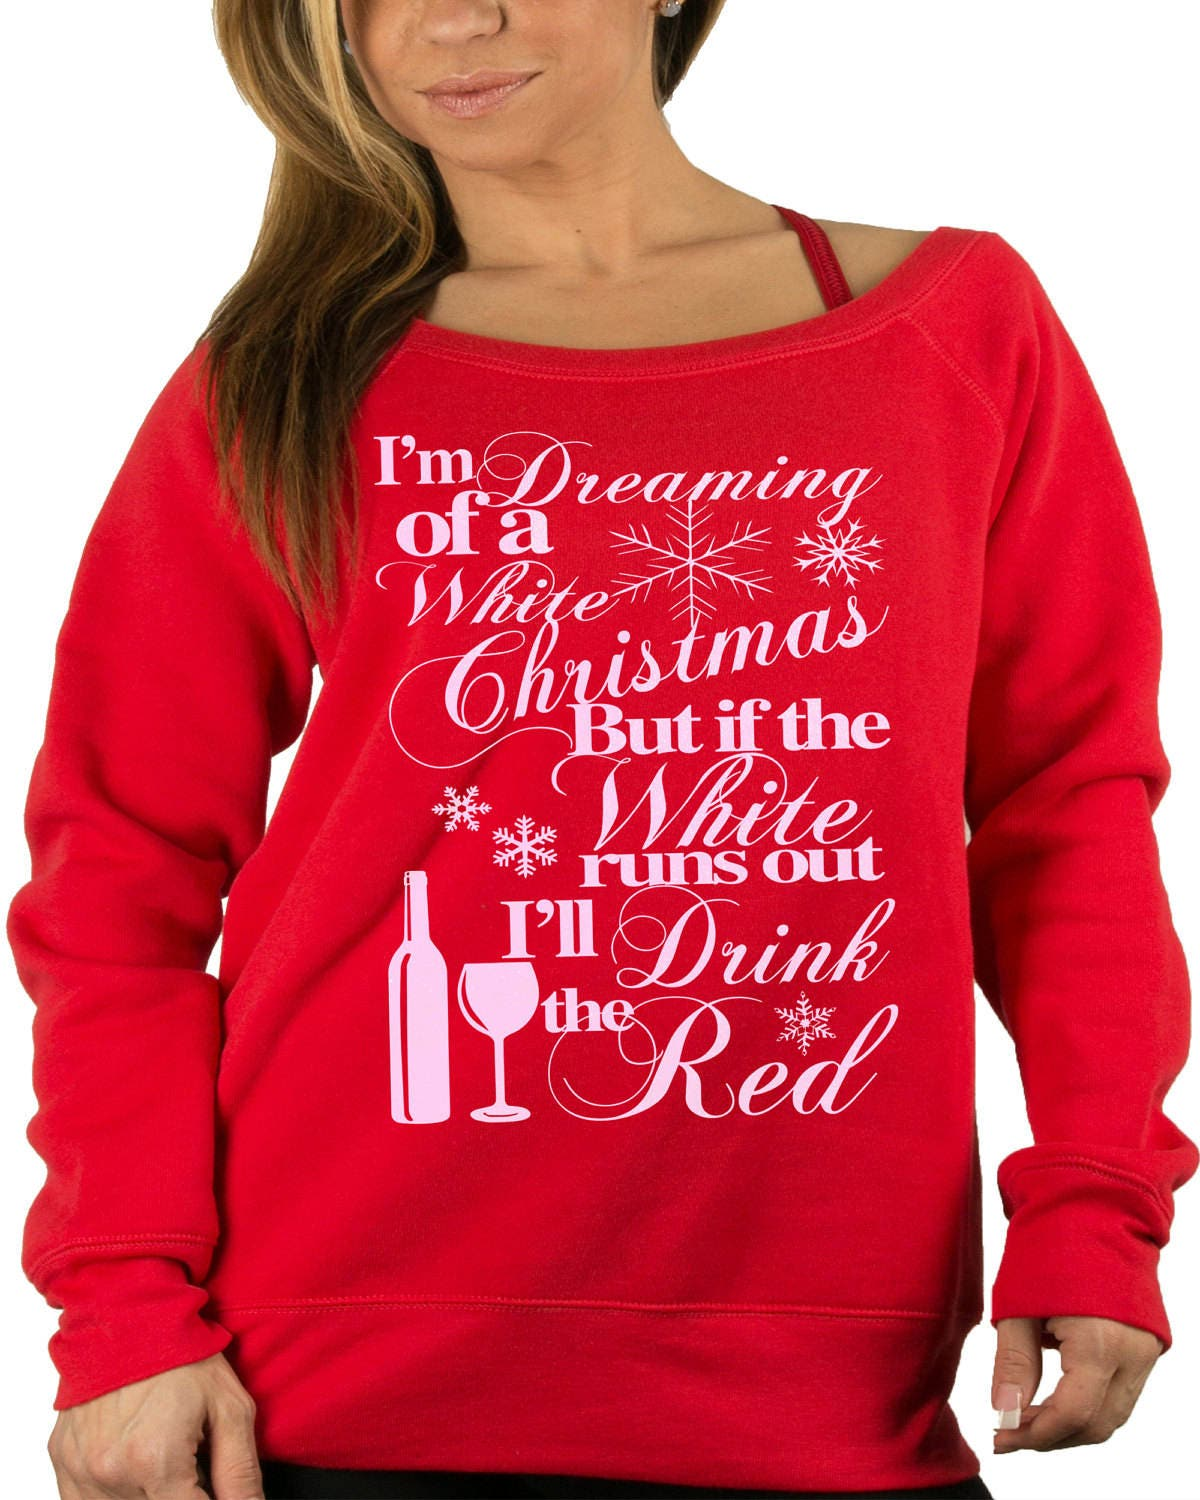 Wine Bottle Design.Wino. Wine Lovers Christmas Sweater.Ugly | Etsy